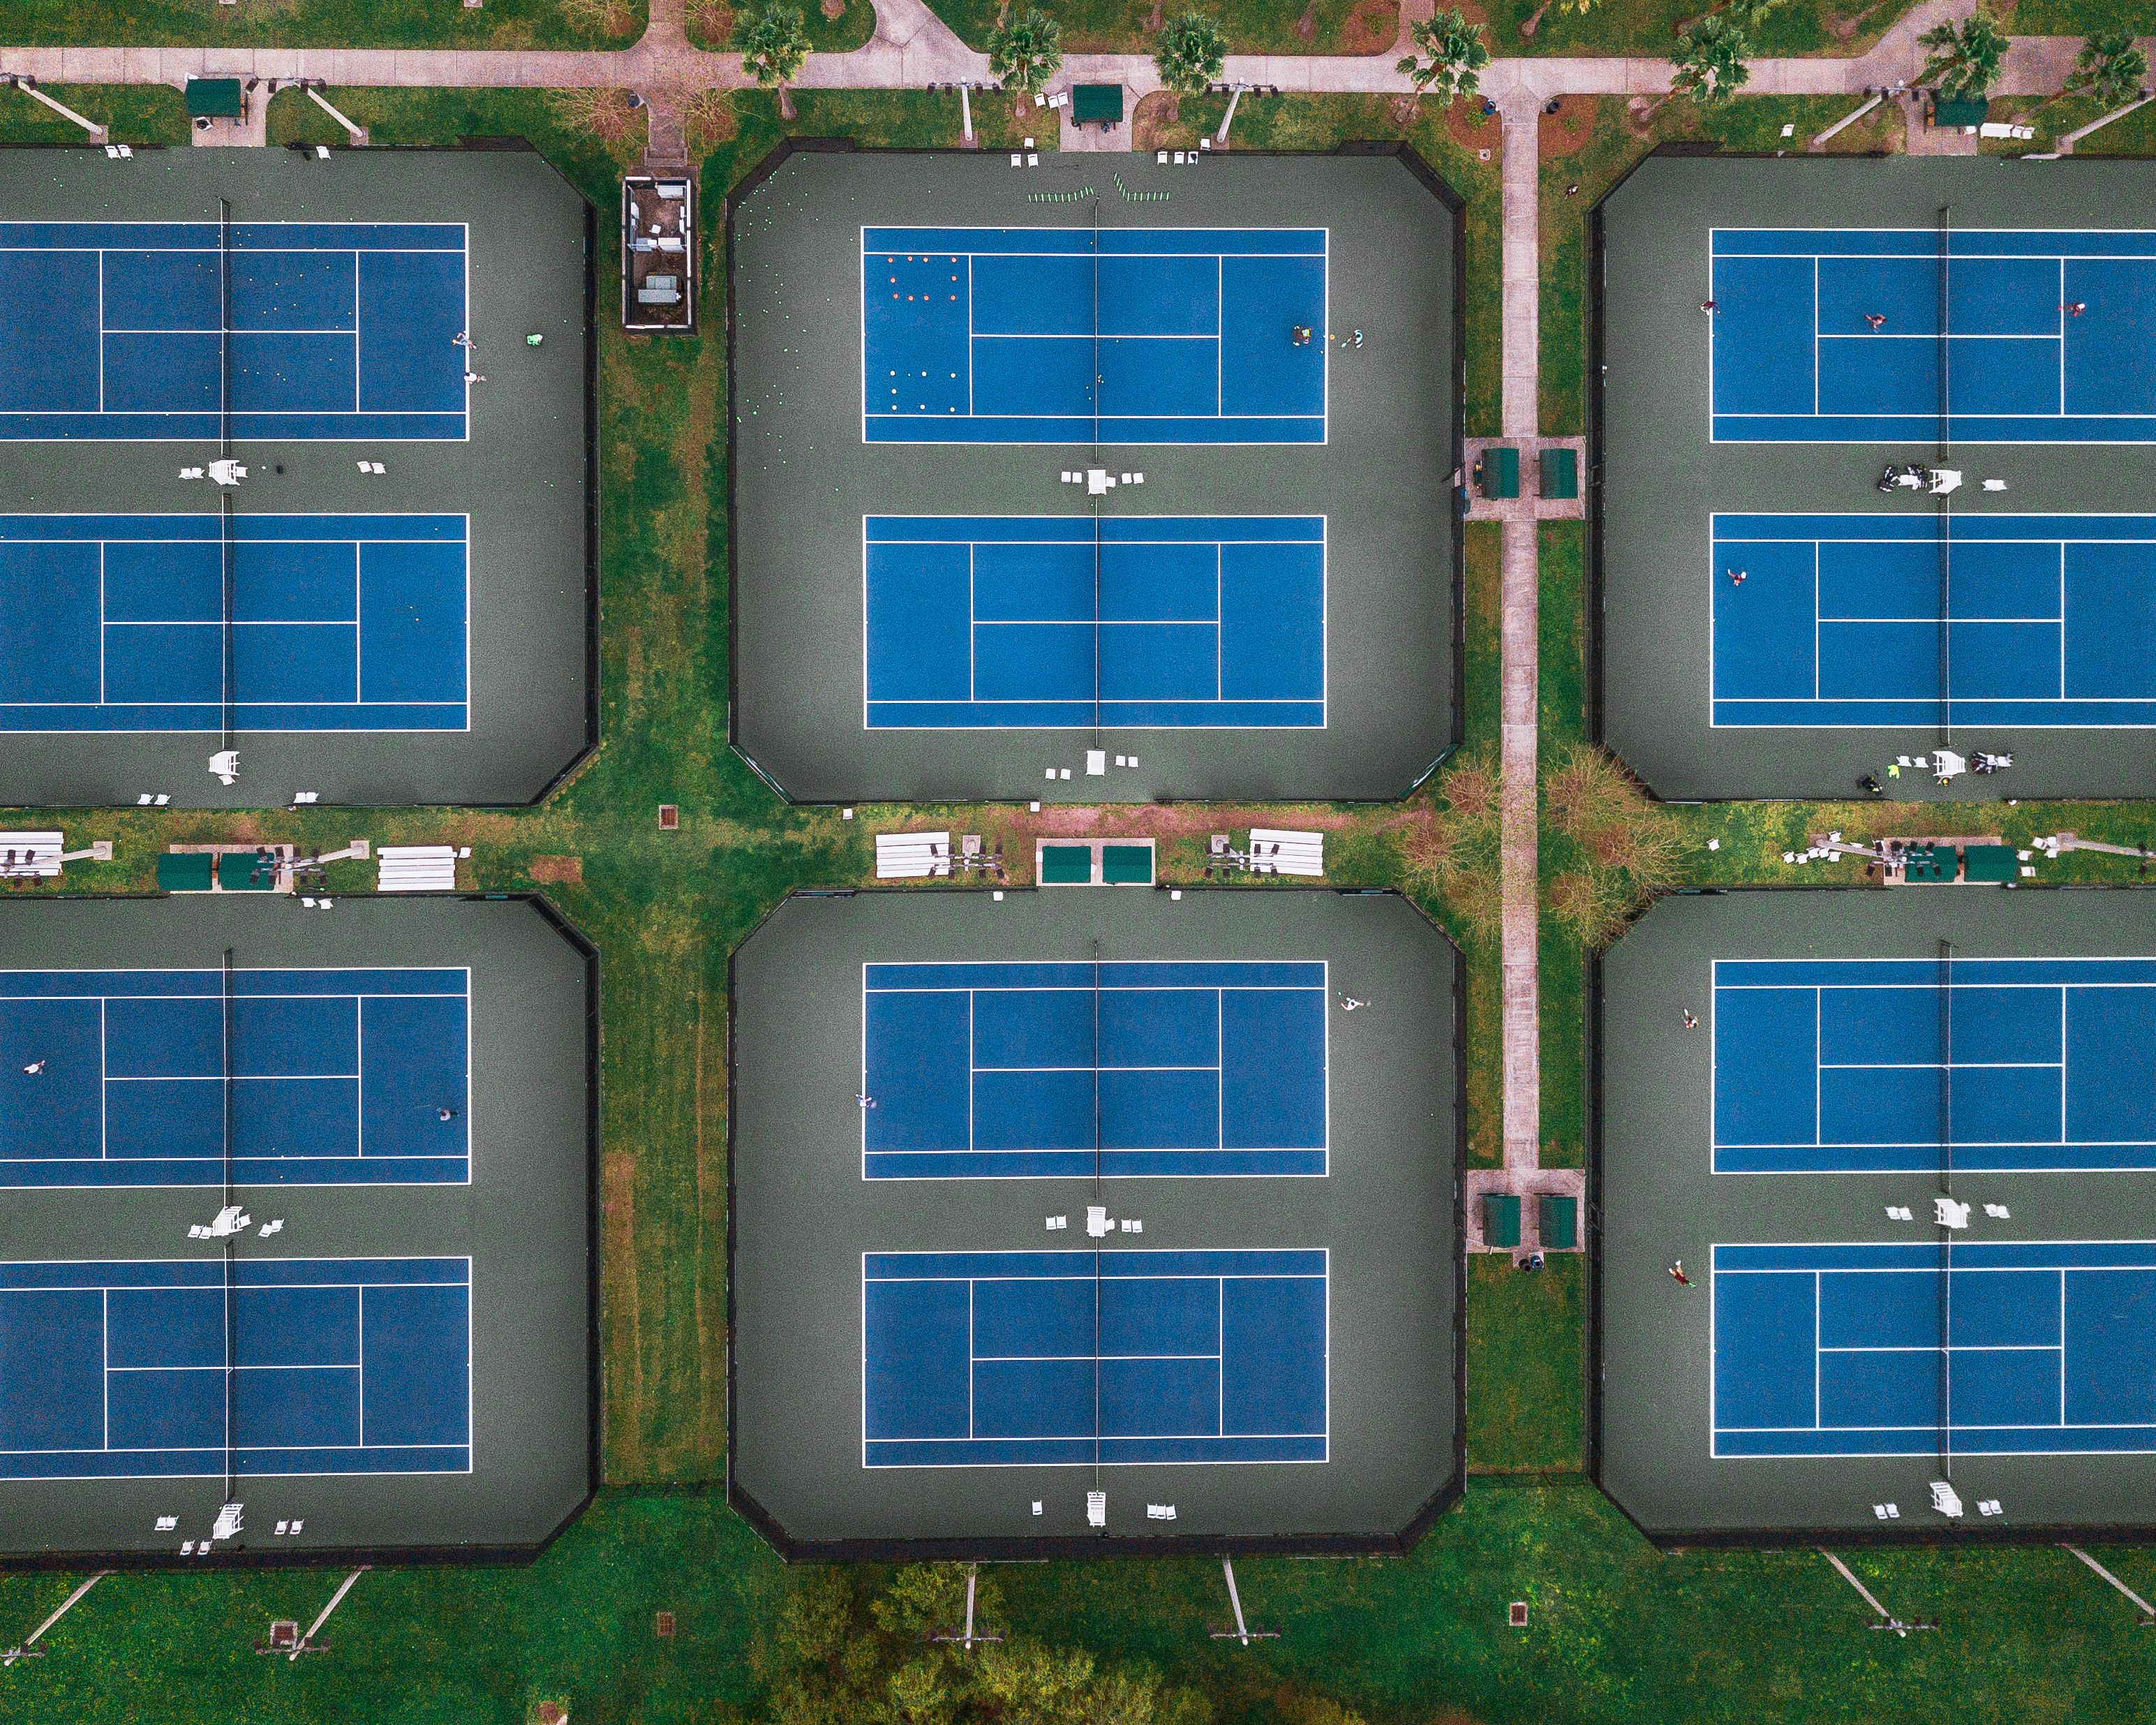 Aerial view looking down on tennis courts in City Park